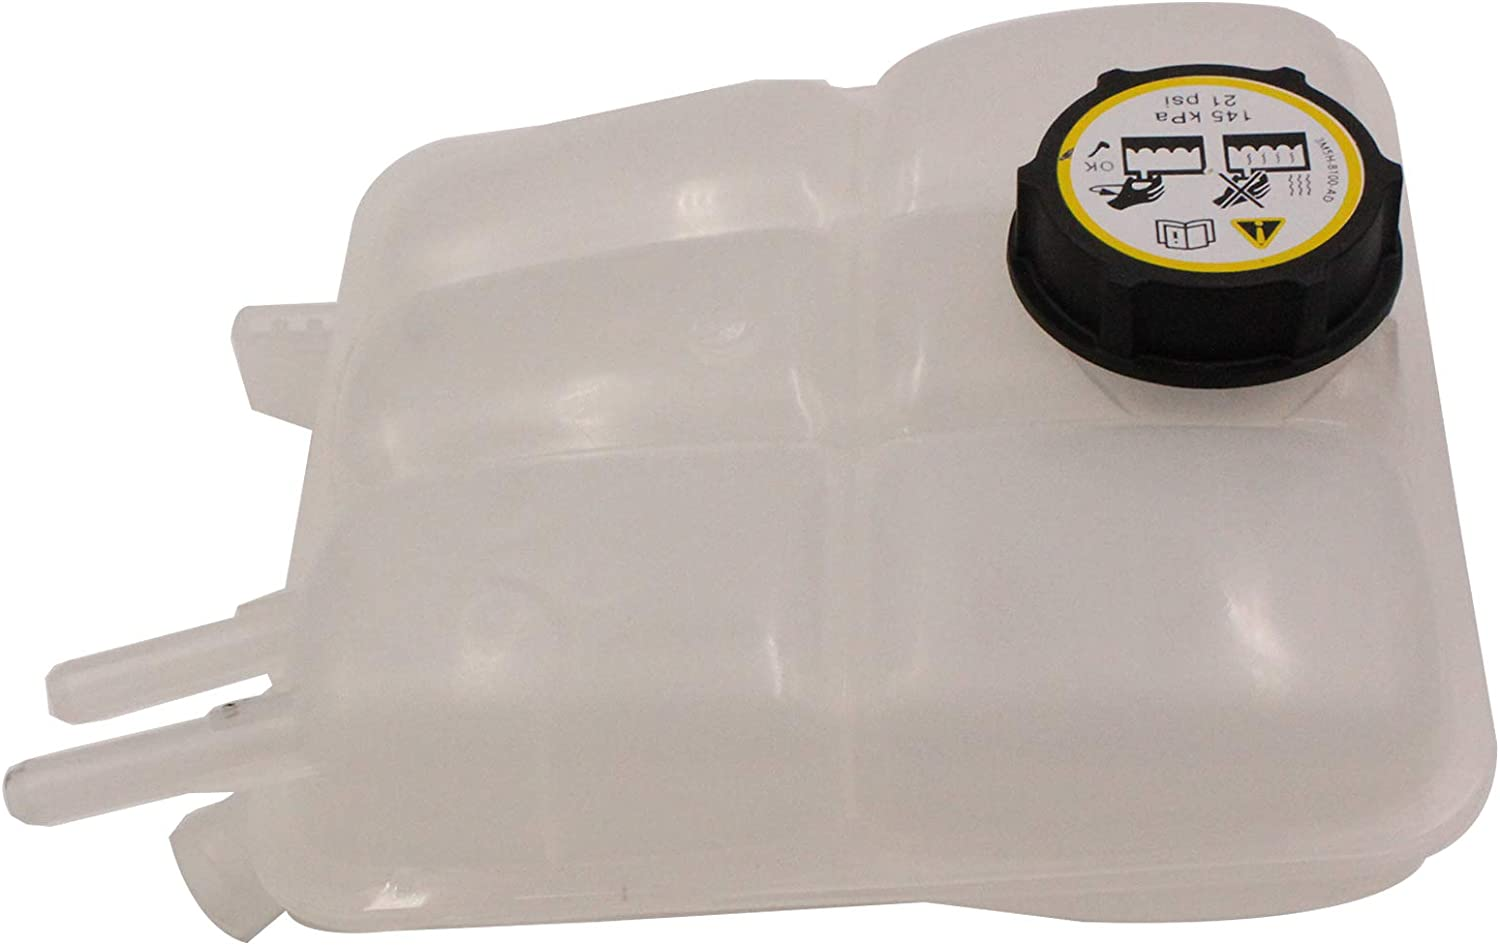 11-14 Mazda 2 Coolant Recovery Reservoir Overflow Bottle Expansion Tank with Cap